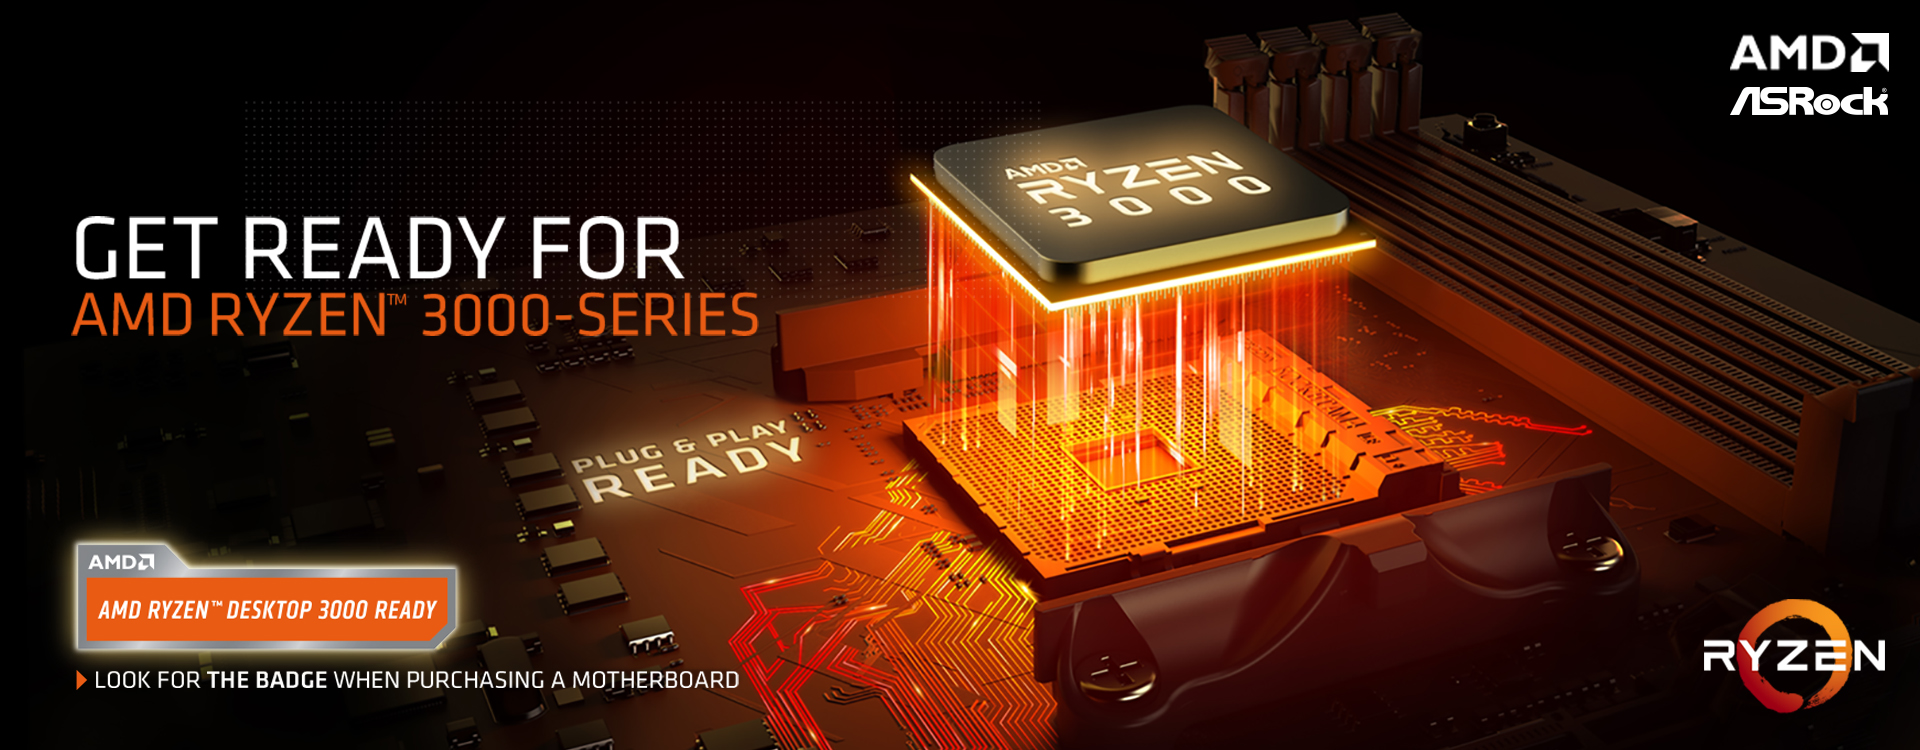 AMD Ryzen 300 Series banner that shows a graphic of a motherboard with the AMD Ryzen 3000 CPU Approaching the Socket with Light and streaming geometric graphics in between. There is also text that reads: GET READY FOR AMD RYZEN 3000-SERIES -  AMD RYZEN DESKTOP 3000 READY - PLUG & PLAY READY - LOOK FOR THE BADGE WHEN PURCHASING A MOTHERBOARD